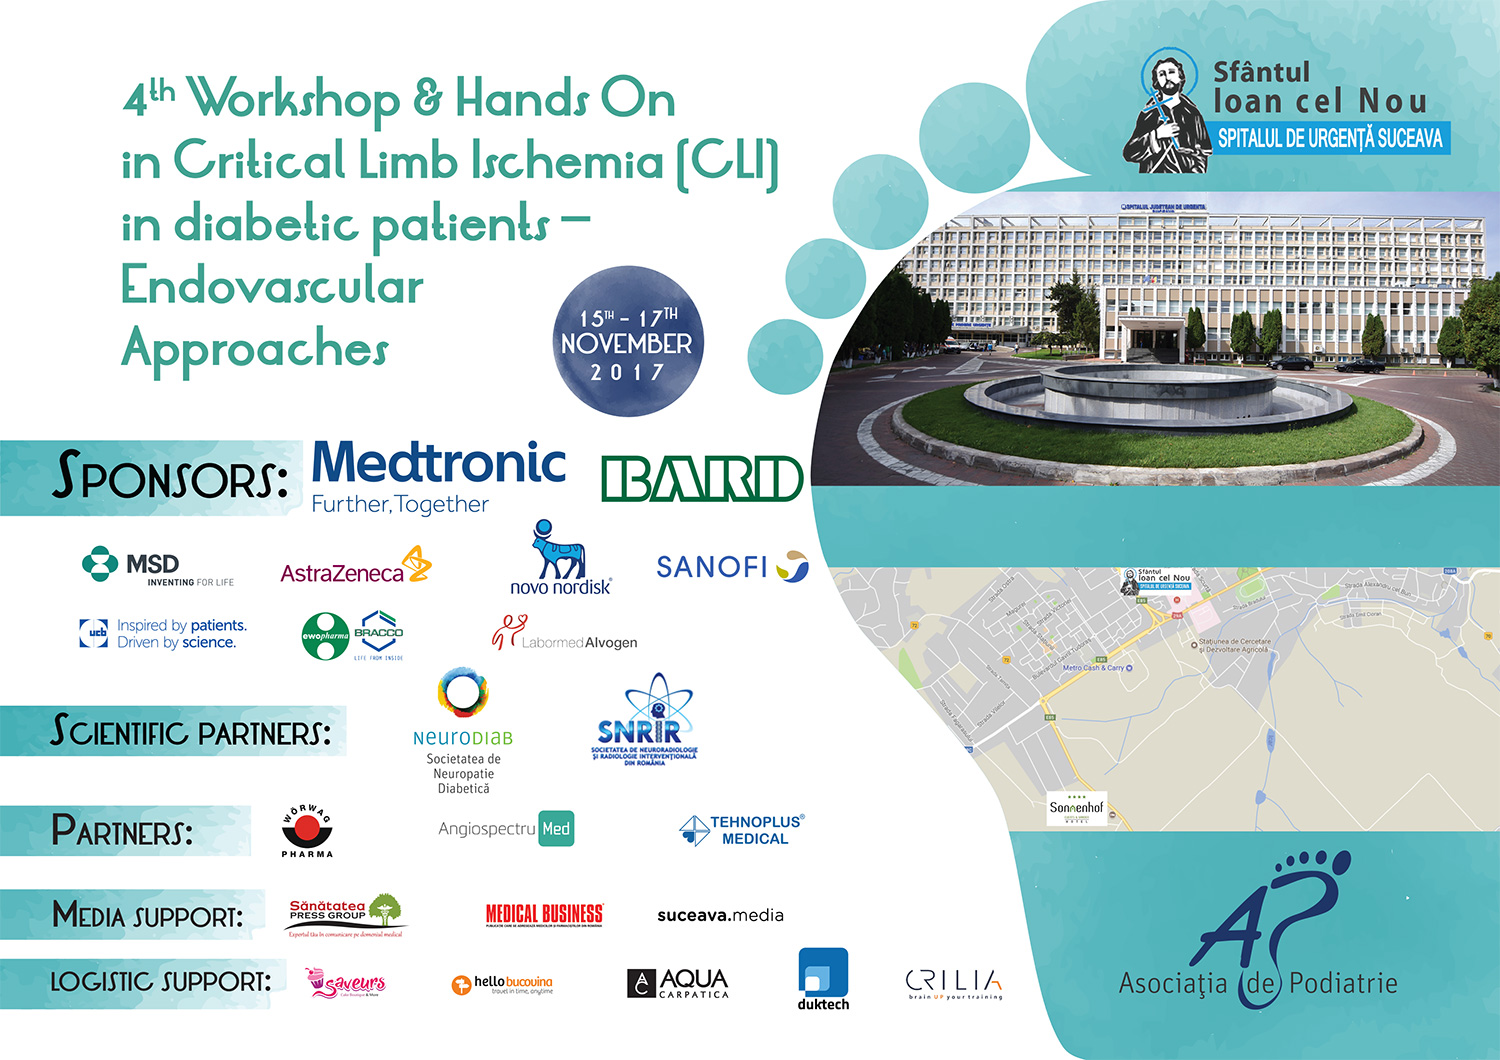 4th Workshop & Hands On in Critical Limb Ischemia (CLI) in diabetic patients - Endovascular Approaches